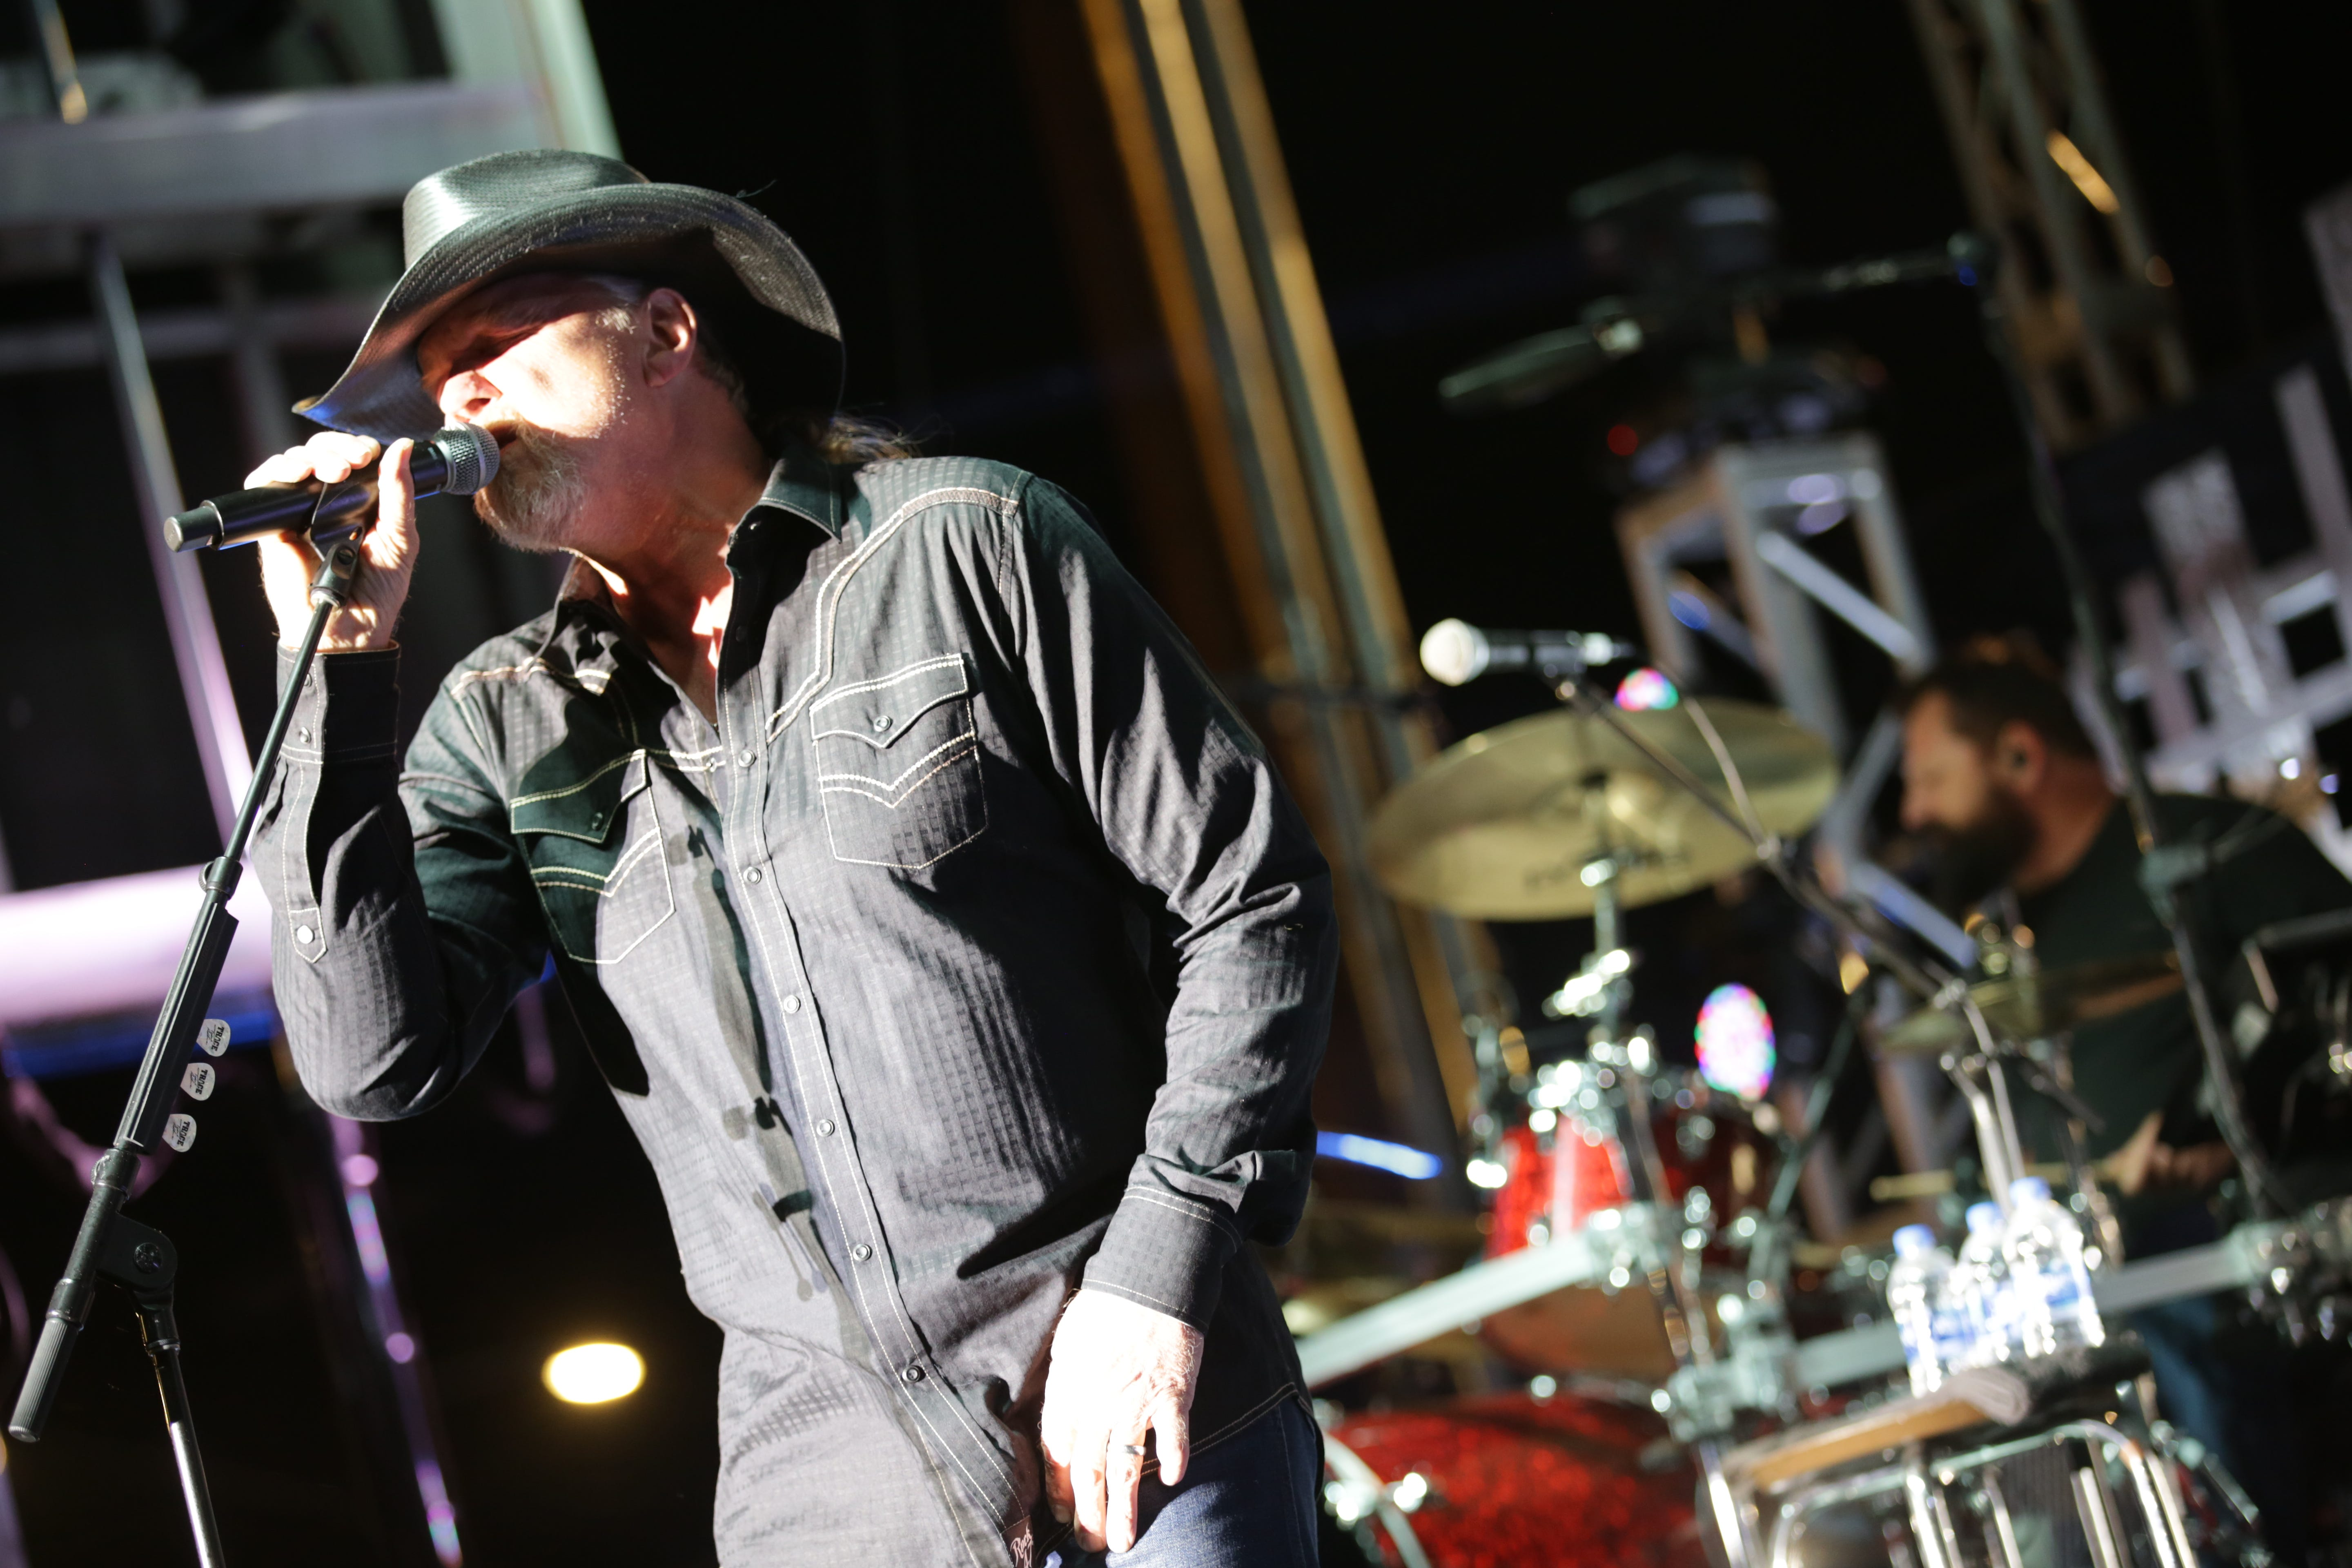 Trace Adkins, Lonestar performing at St. Augustine Amphitheatre on Dec. 2